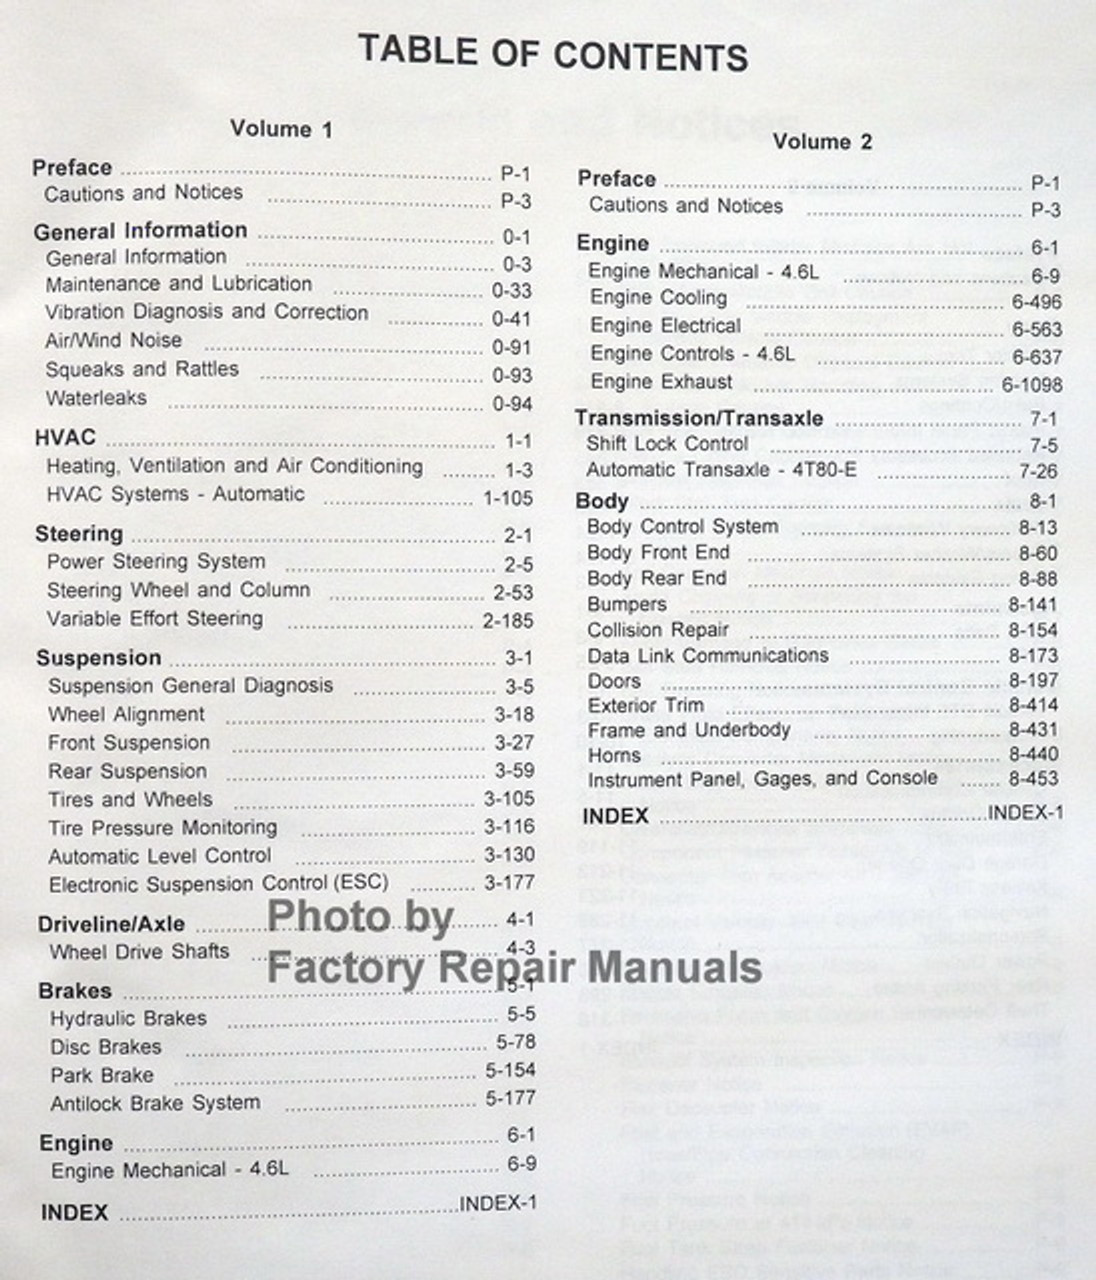 2004 Cadillac Deville Factory Service Manual Shop Repair